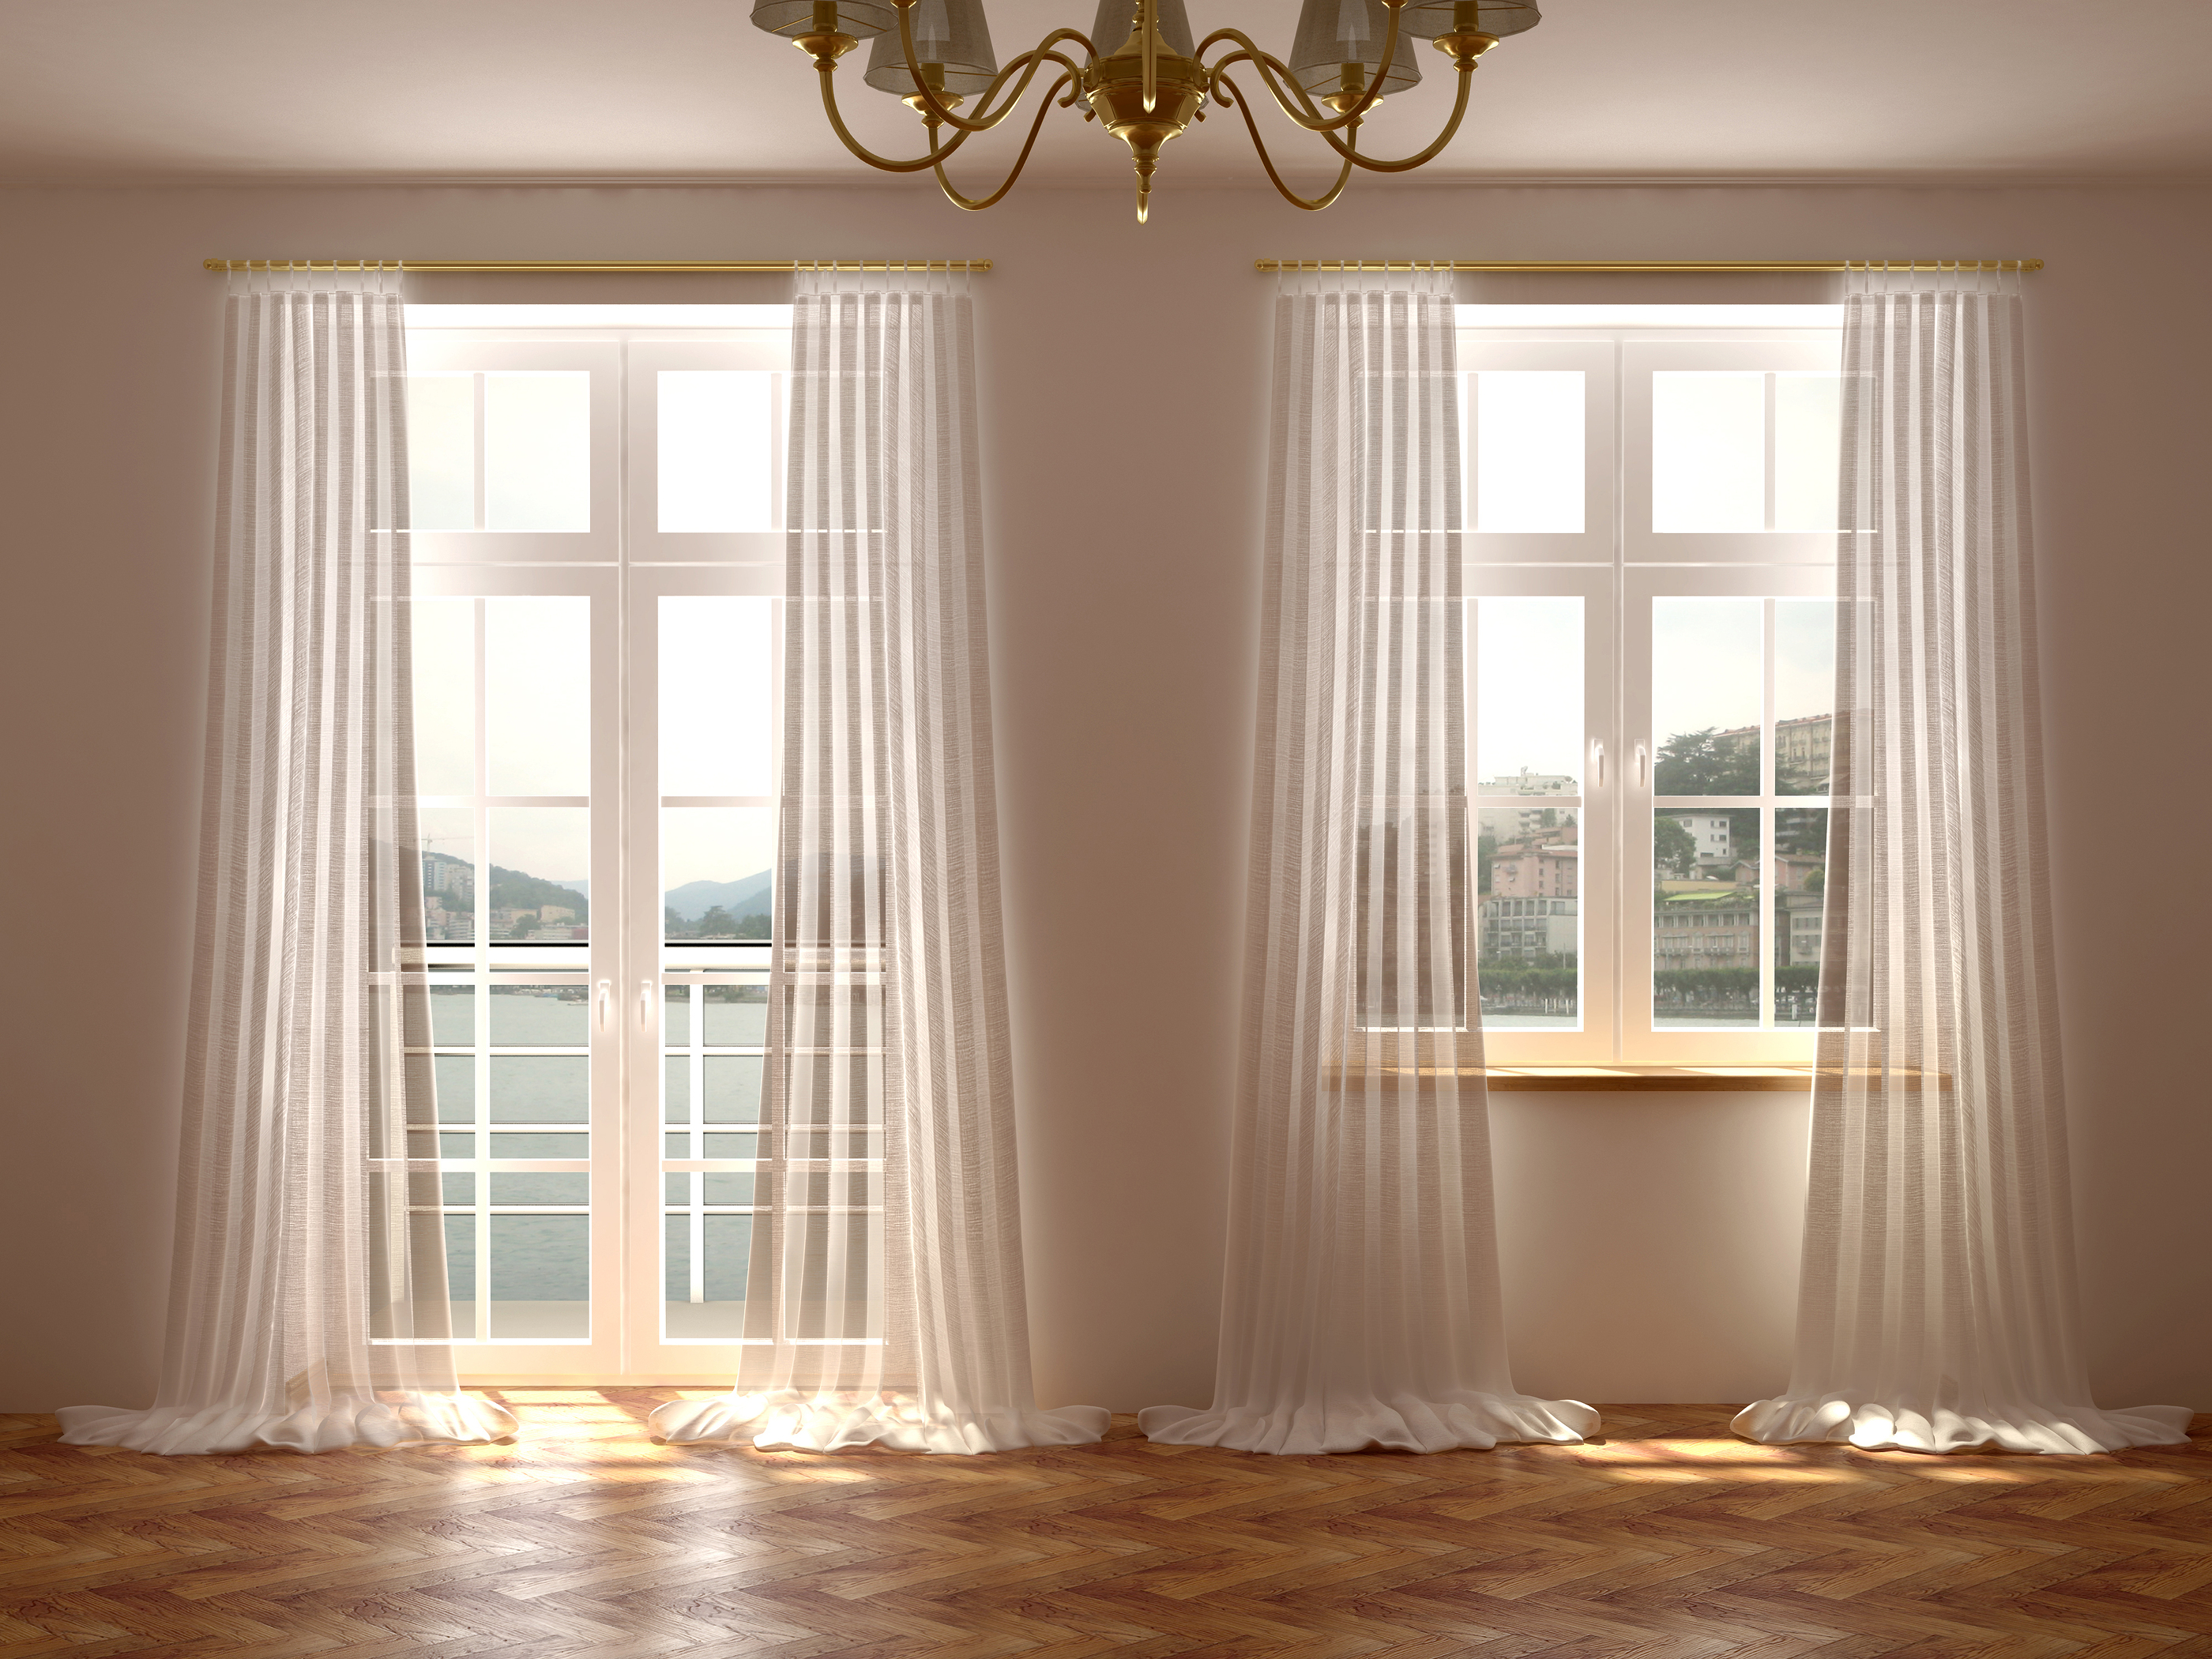 Curtains or blinds which is more luxurious for your home for Window blinds with designs